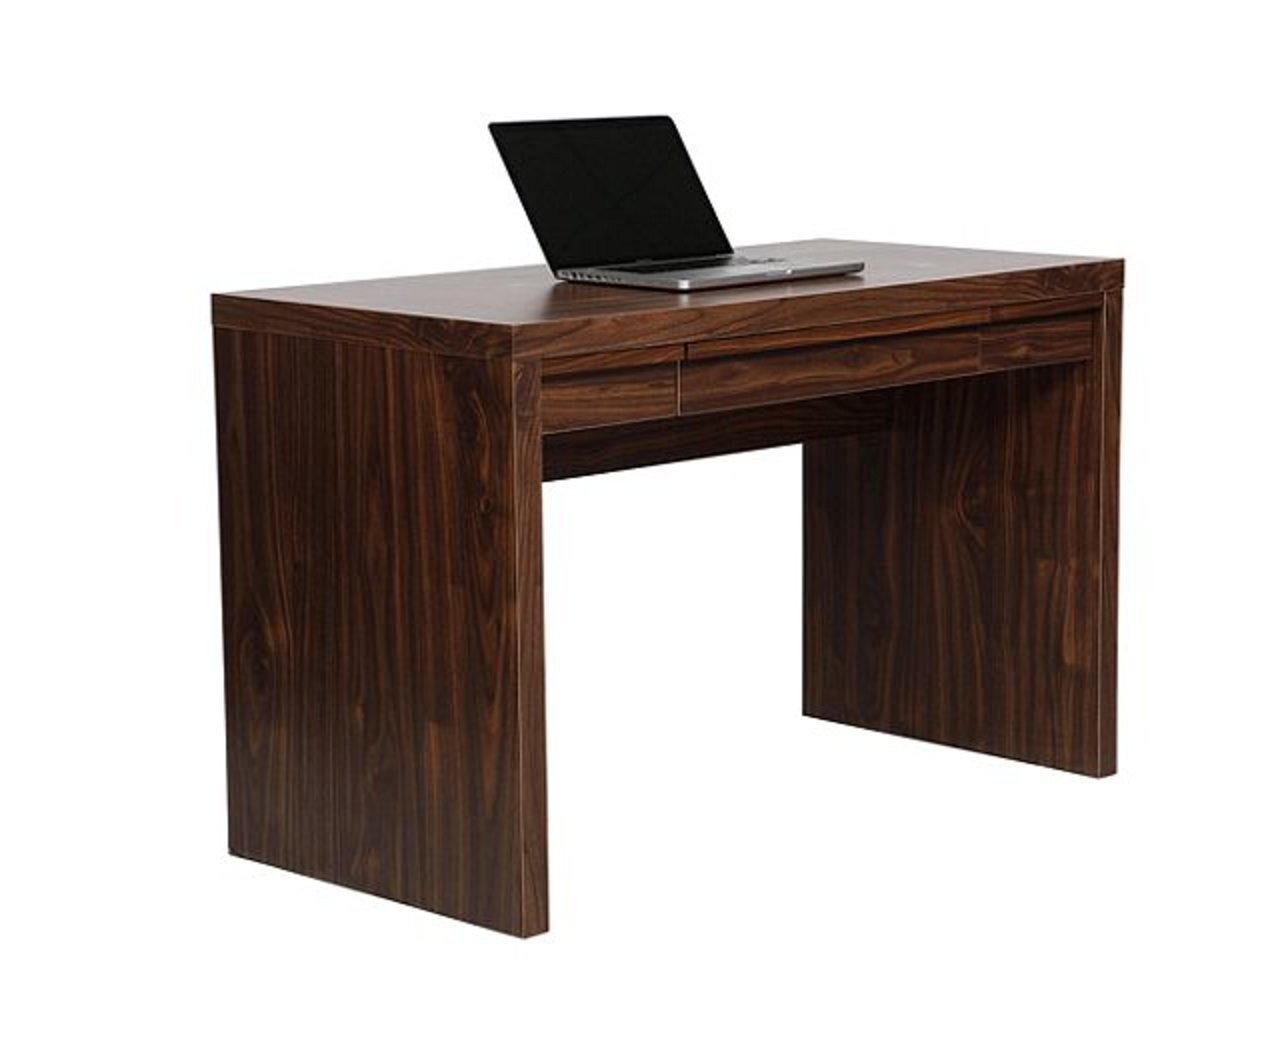 Office desk home study computer craft writing 3 drawer storage chunky walnut ebay - Craft desk with storage ...